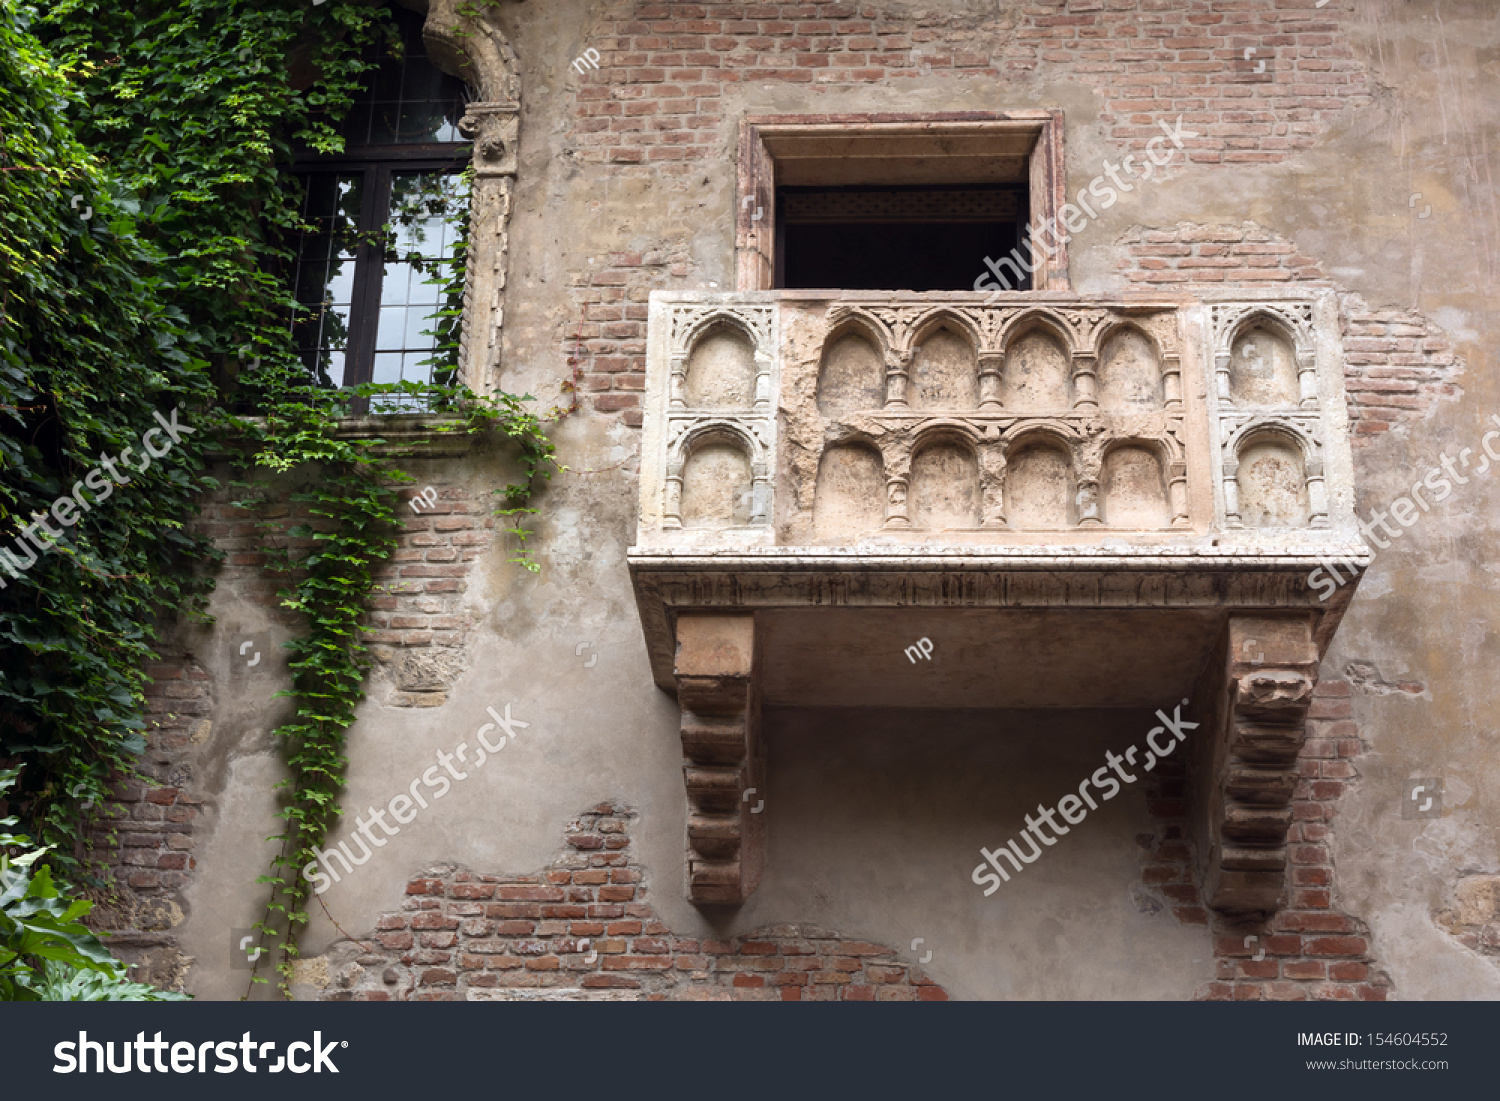 Famous juliets balcony verona italy stock photo 154604552 for Famous balcony